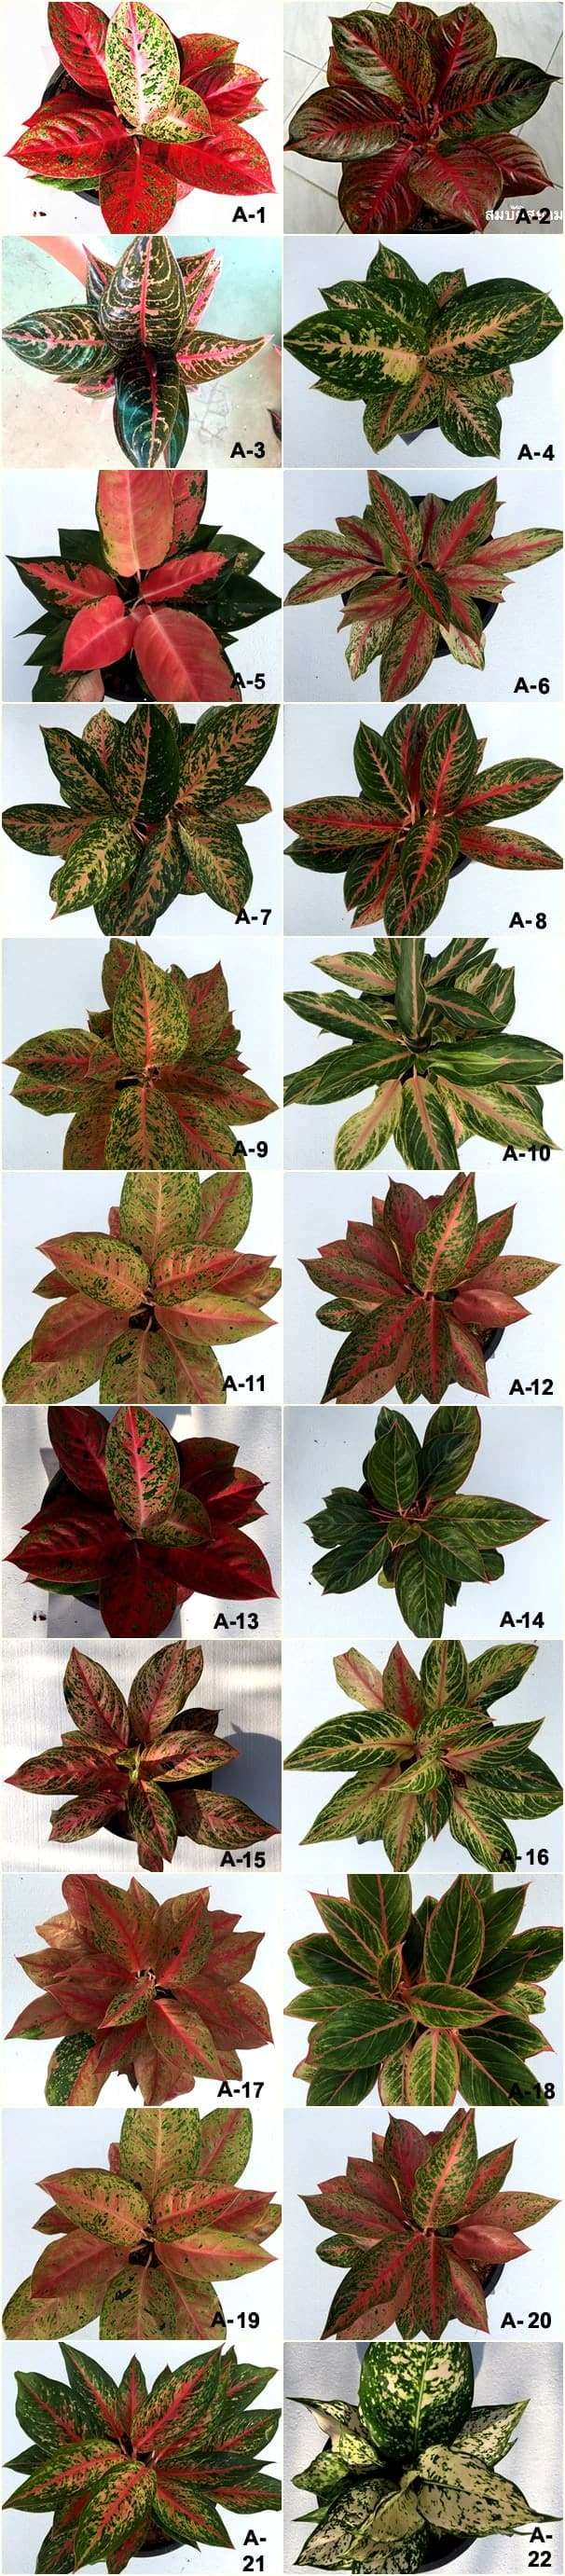 Aglaonema Varieties List - Caldwellcountytxoem.com